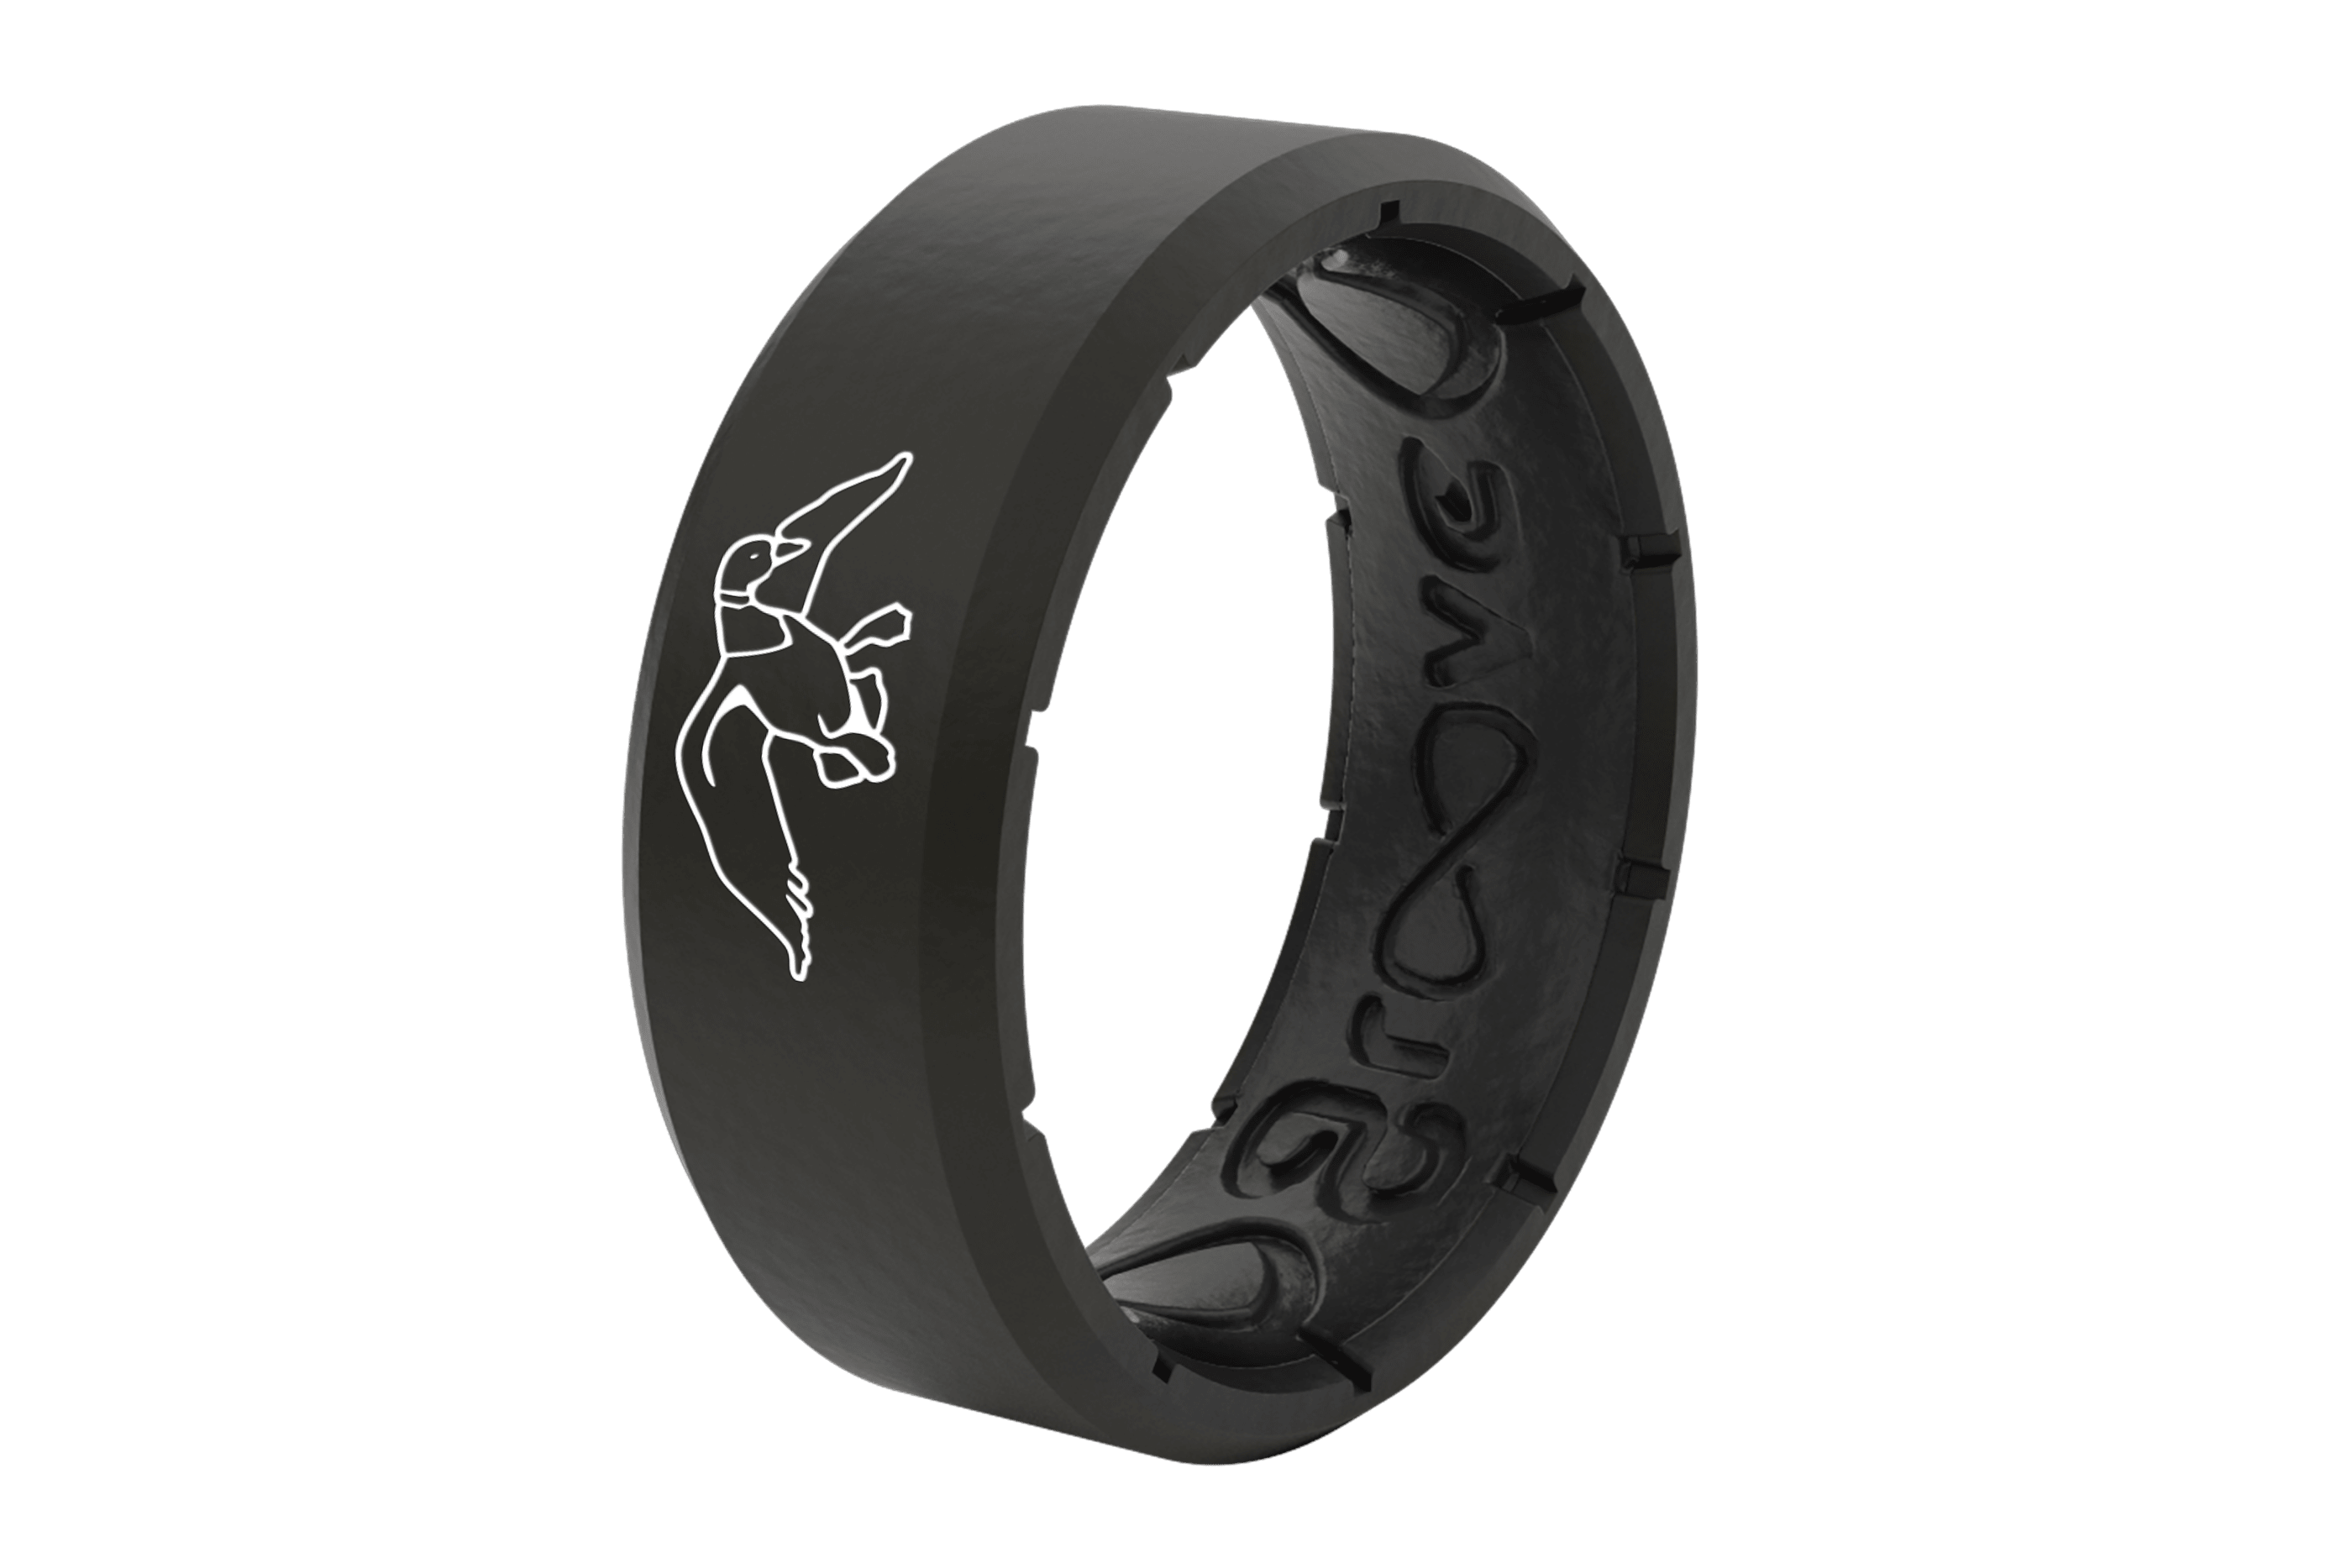 Duck Commander Pitch Black  viewed from side Wedding Rings